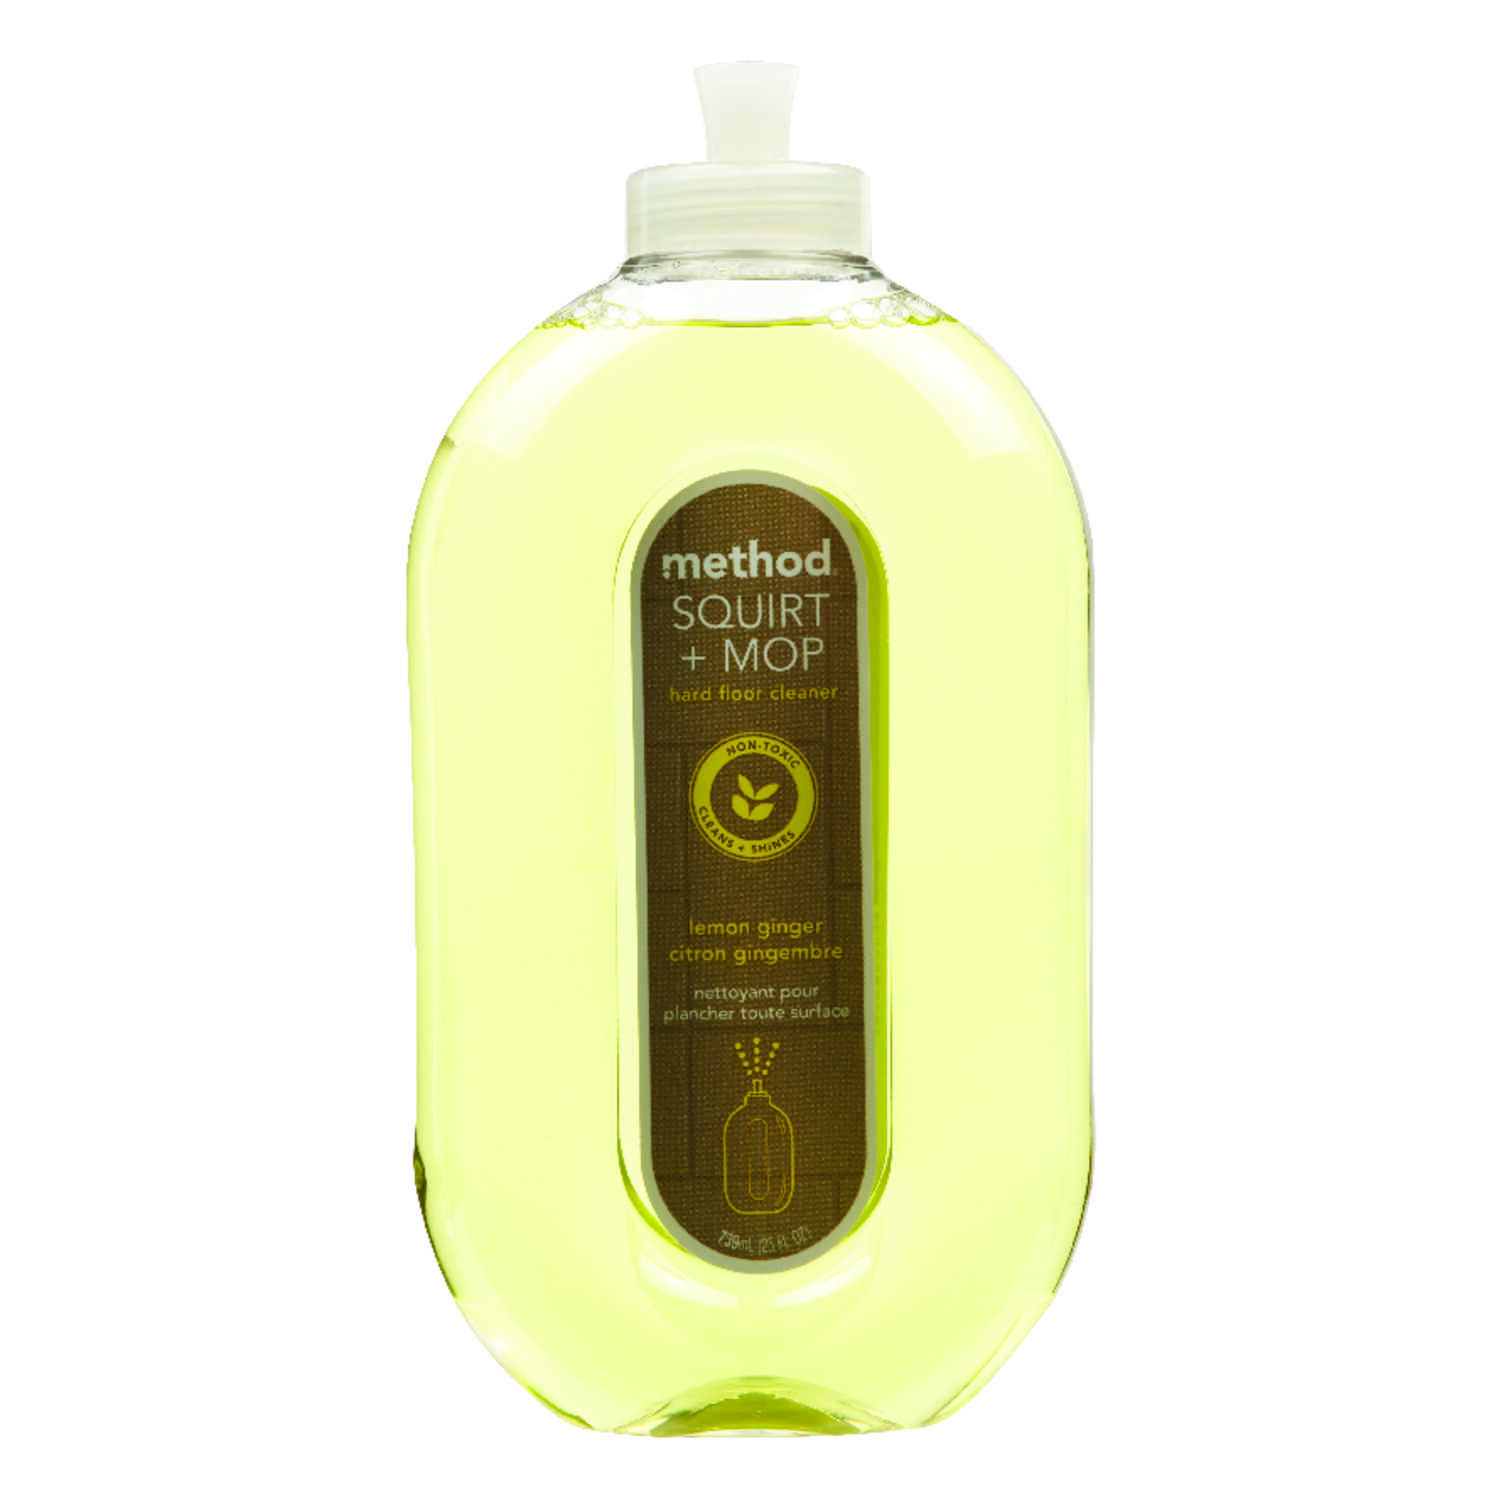 Method  Lemon Ginger Scent Floor Cleaner  25 oz. Liquid